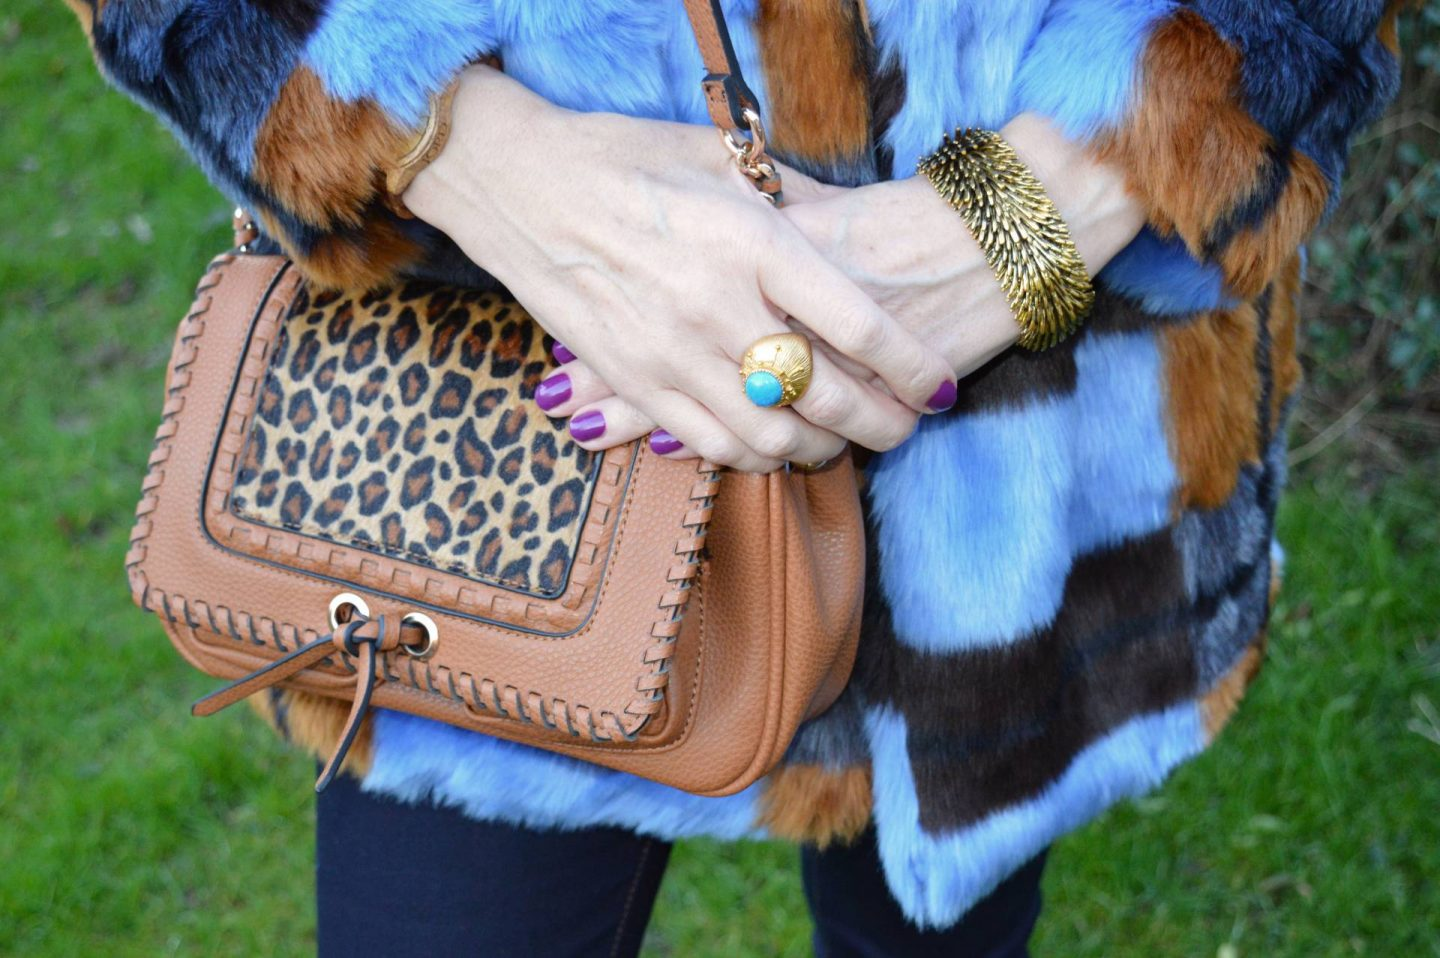 Scottage leopard print bag, Ottoman Hands gold and turquoise ring